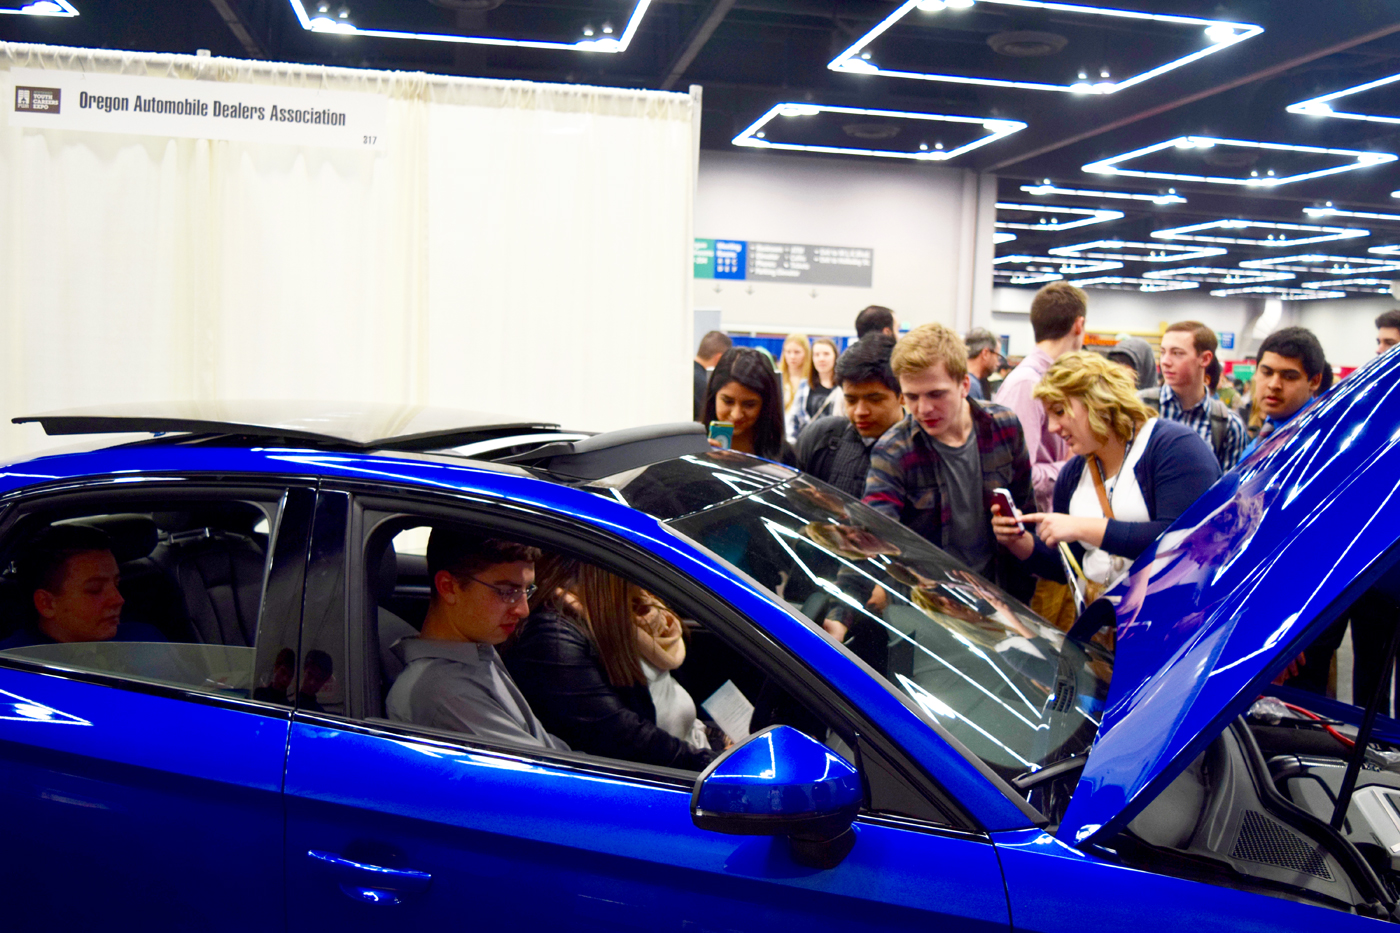 Expo 2016: Oregon Automobile Dealers Association